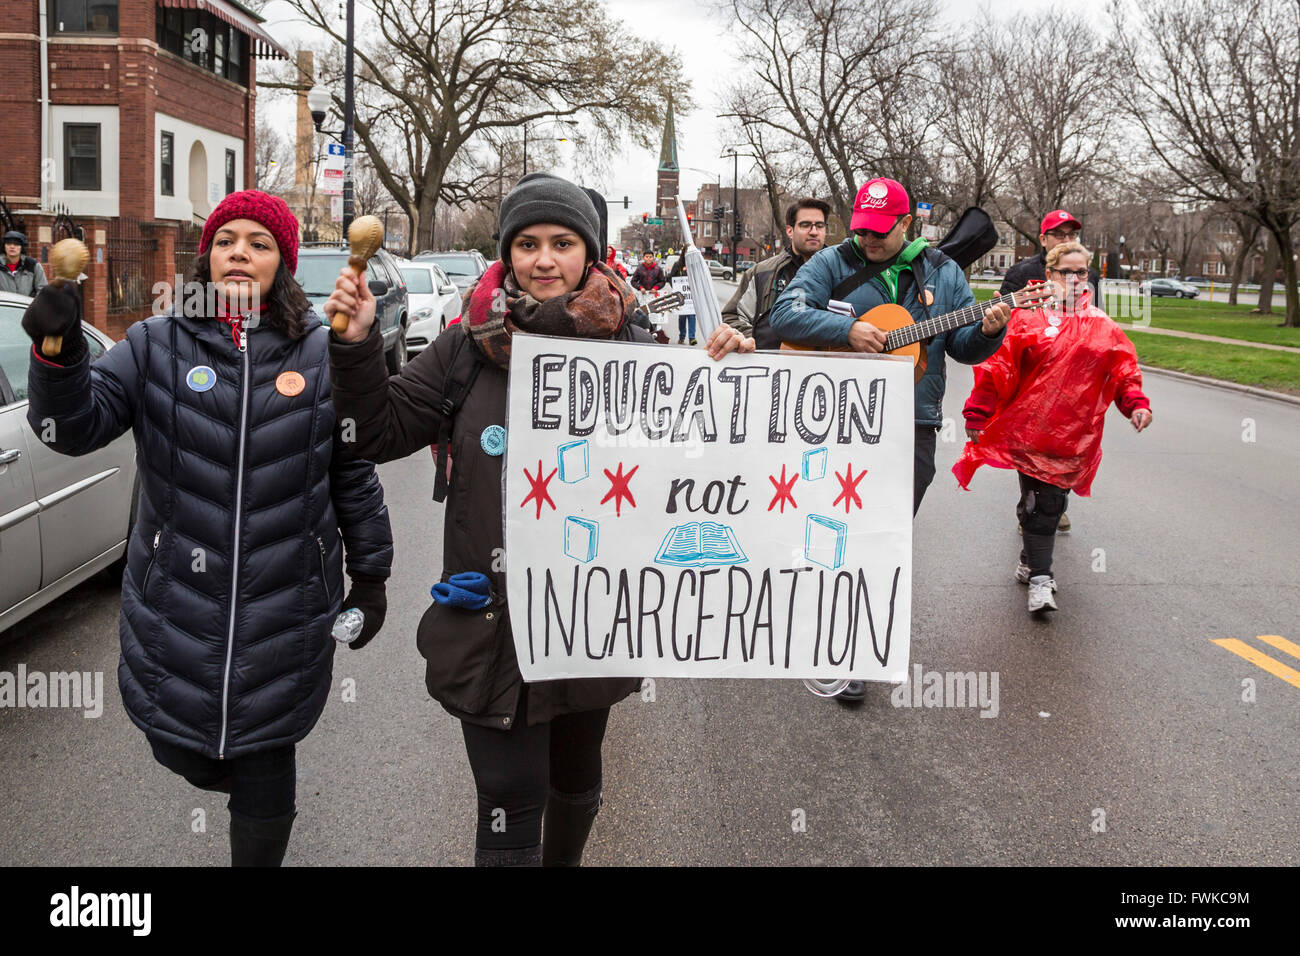 Chicago, Illinois - Striking Chicago teachers marched to the Cook County Jail, demanding funding for schools, not - Stock Image